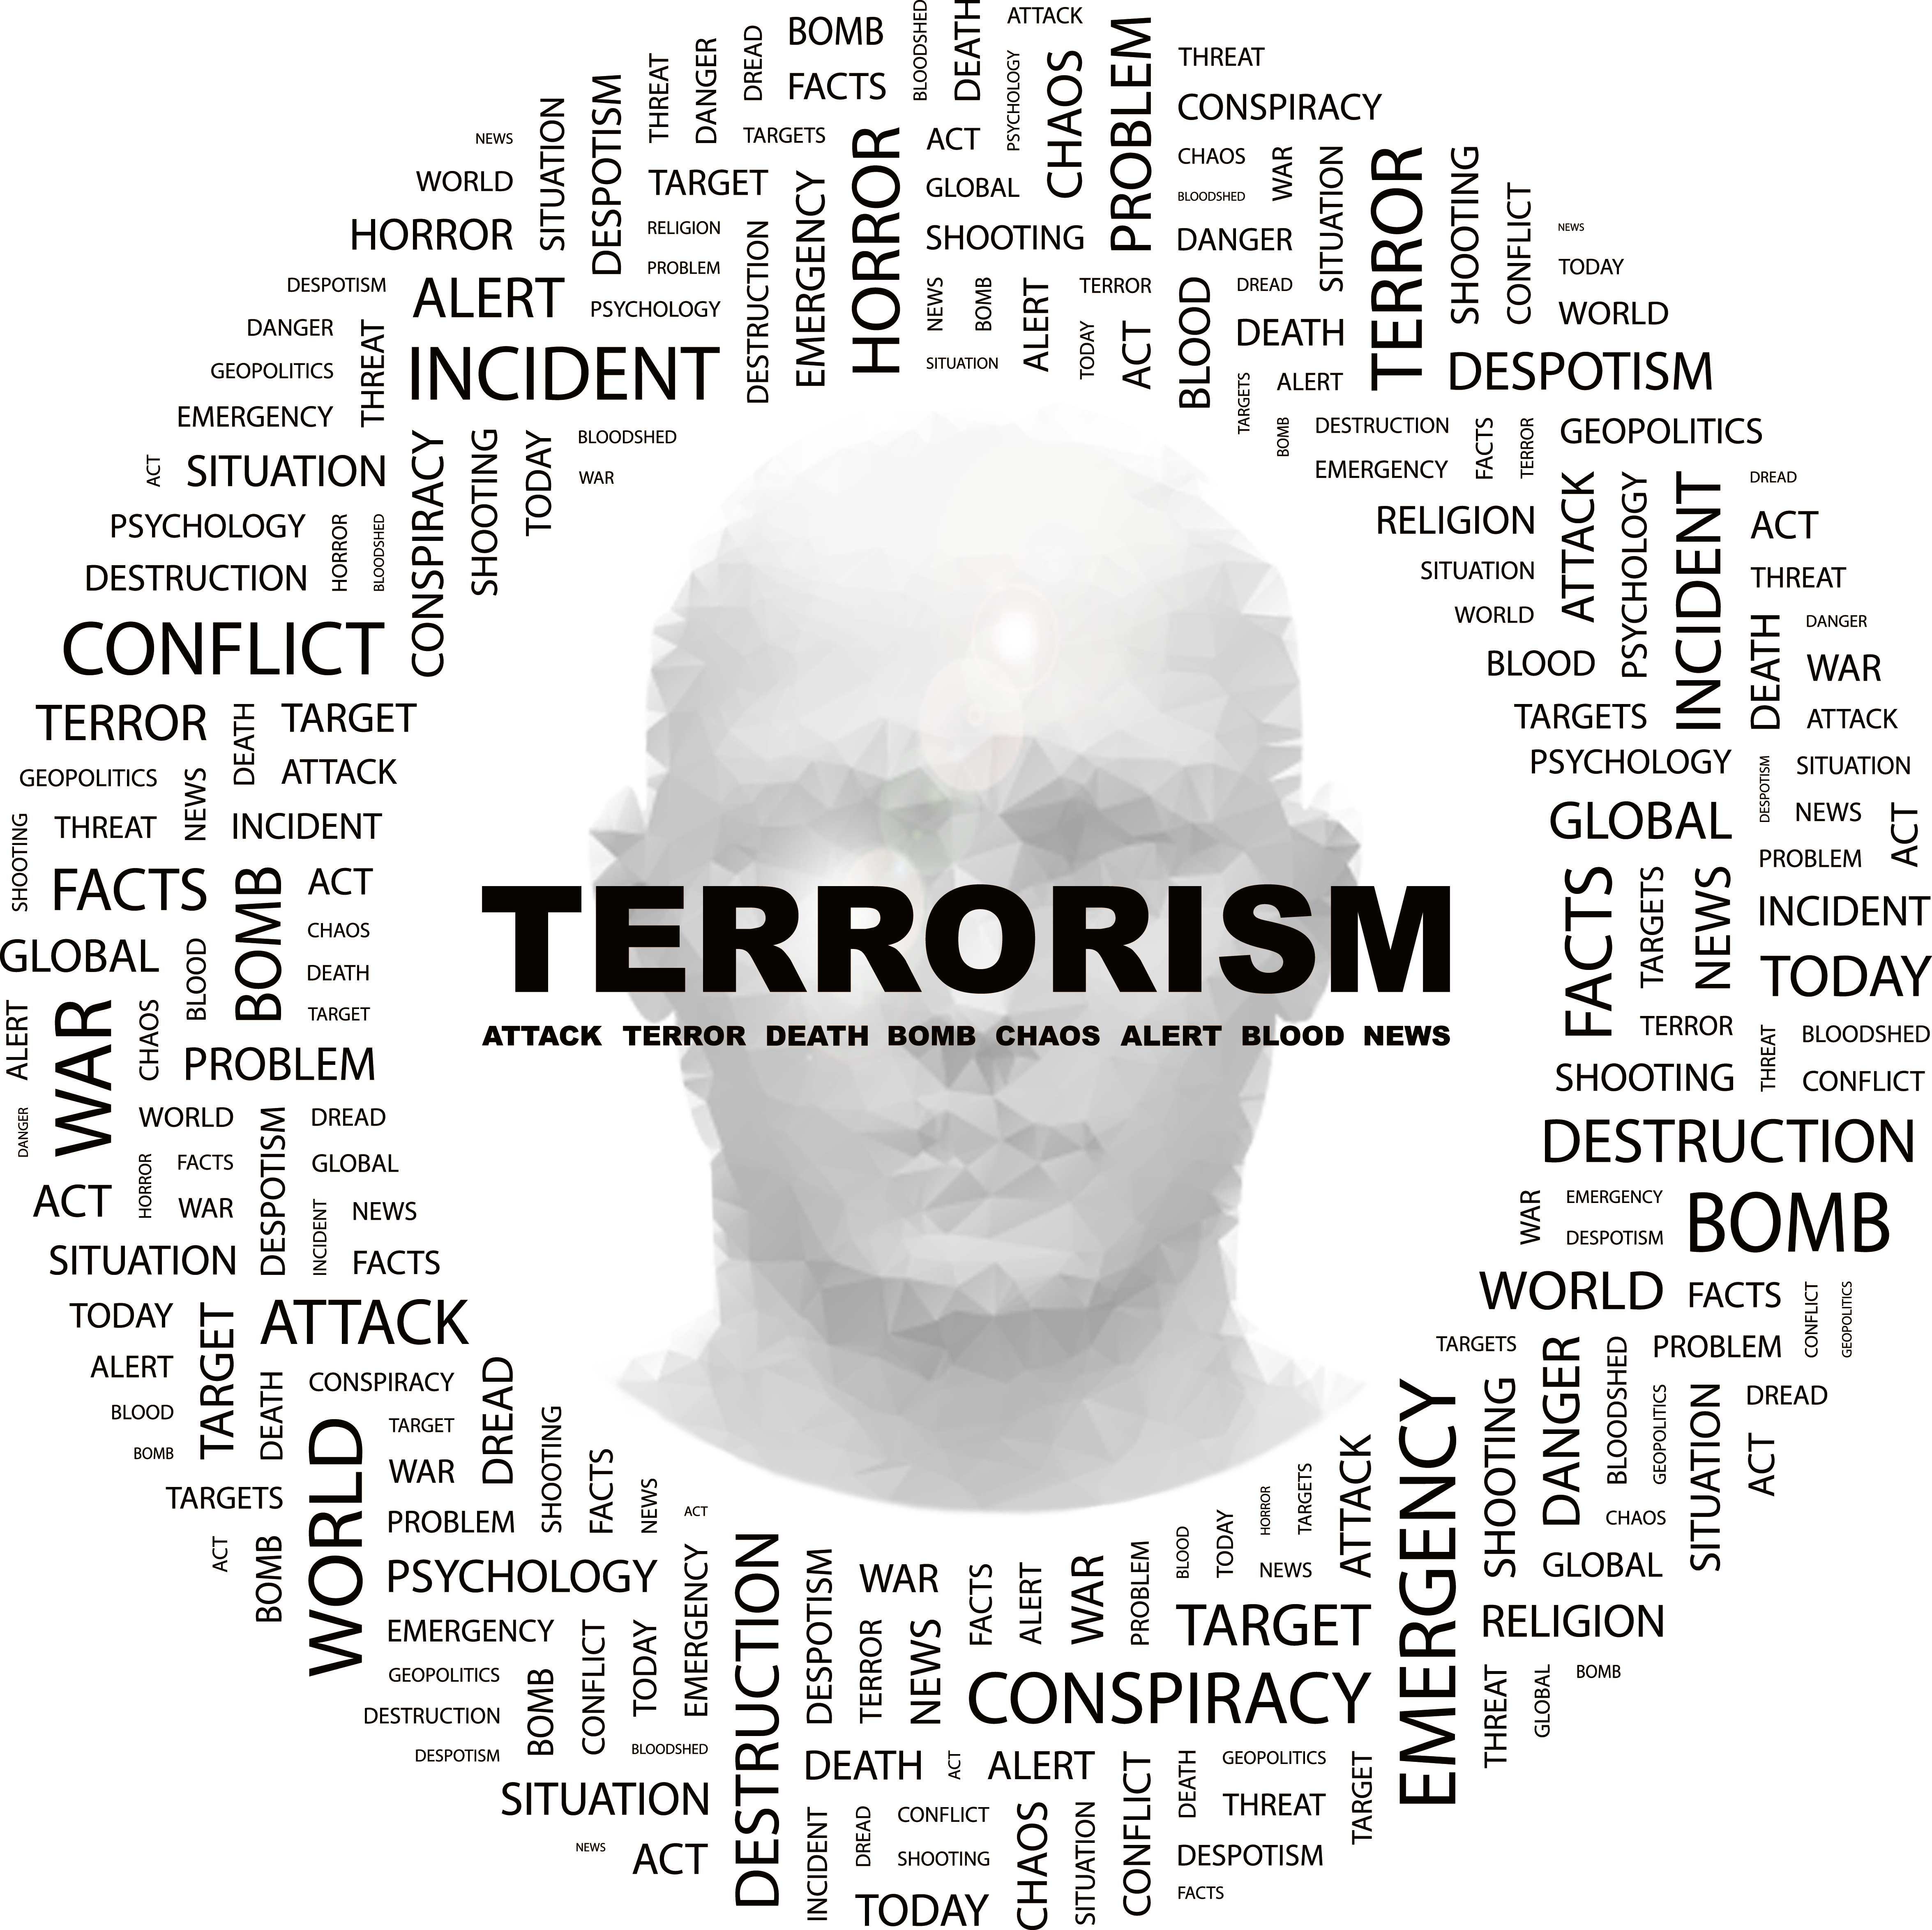 SERE Terror Text & Face 2017.png